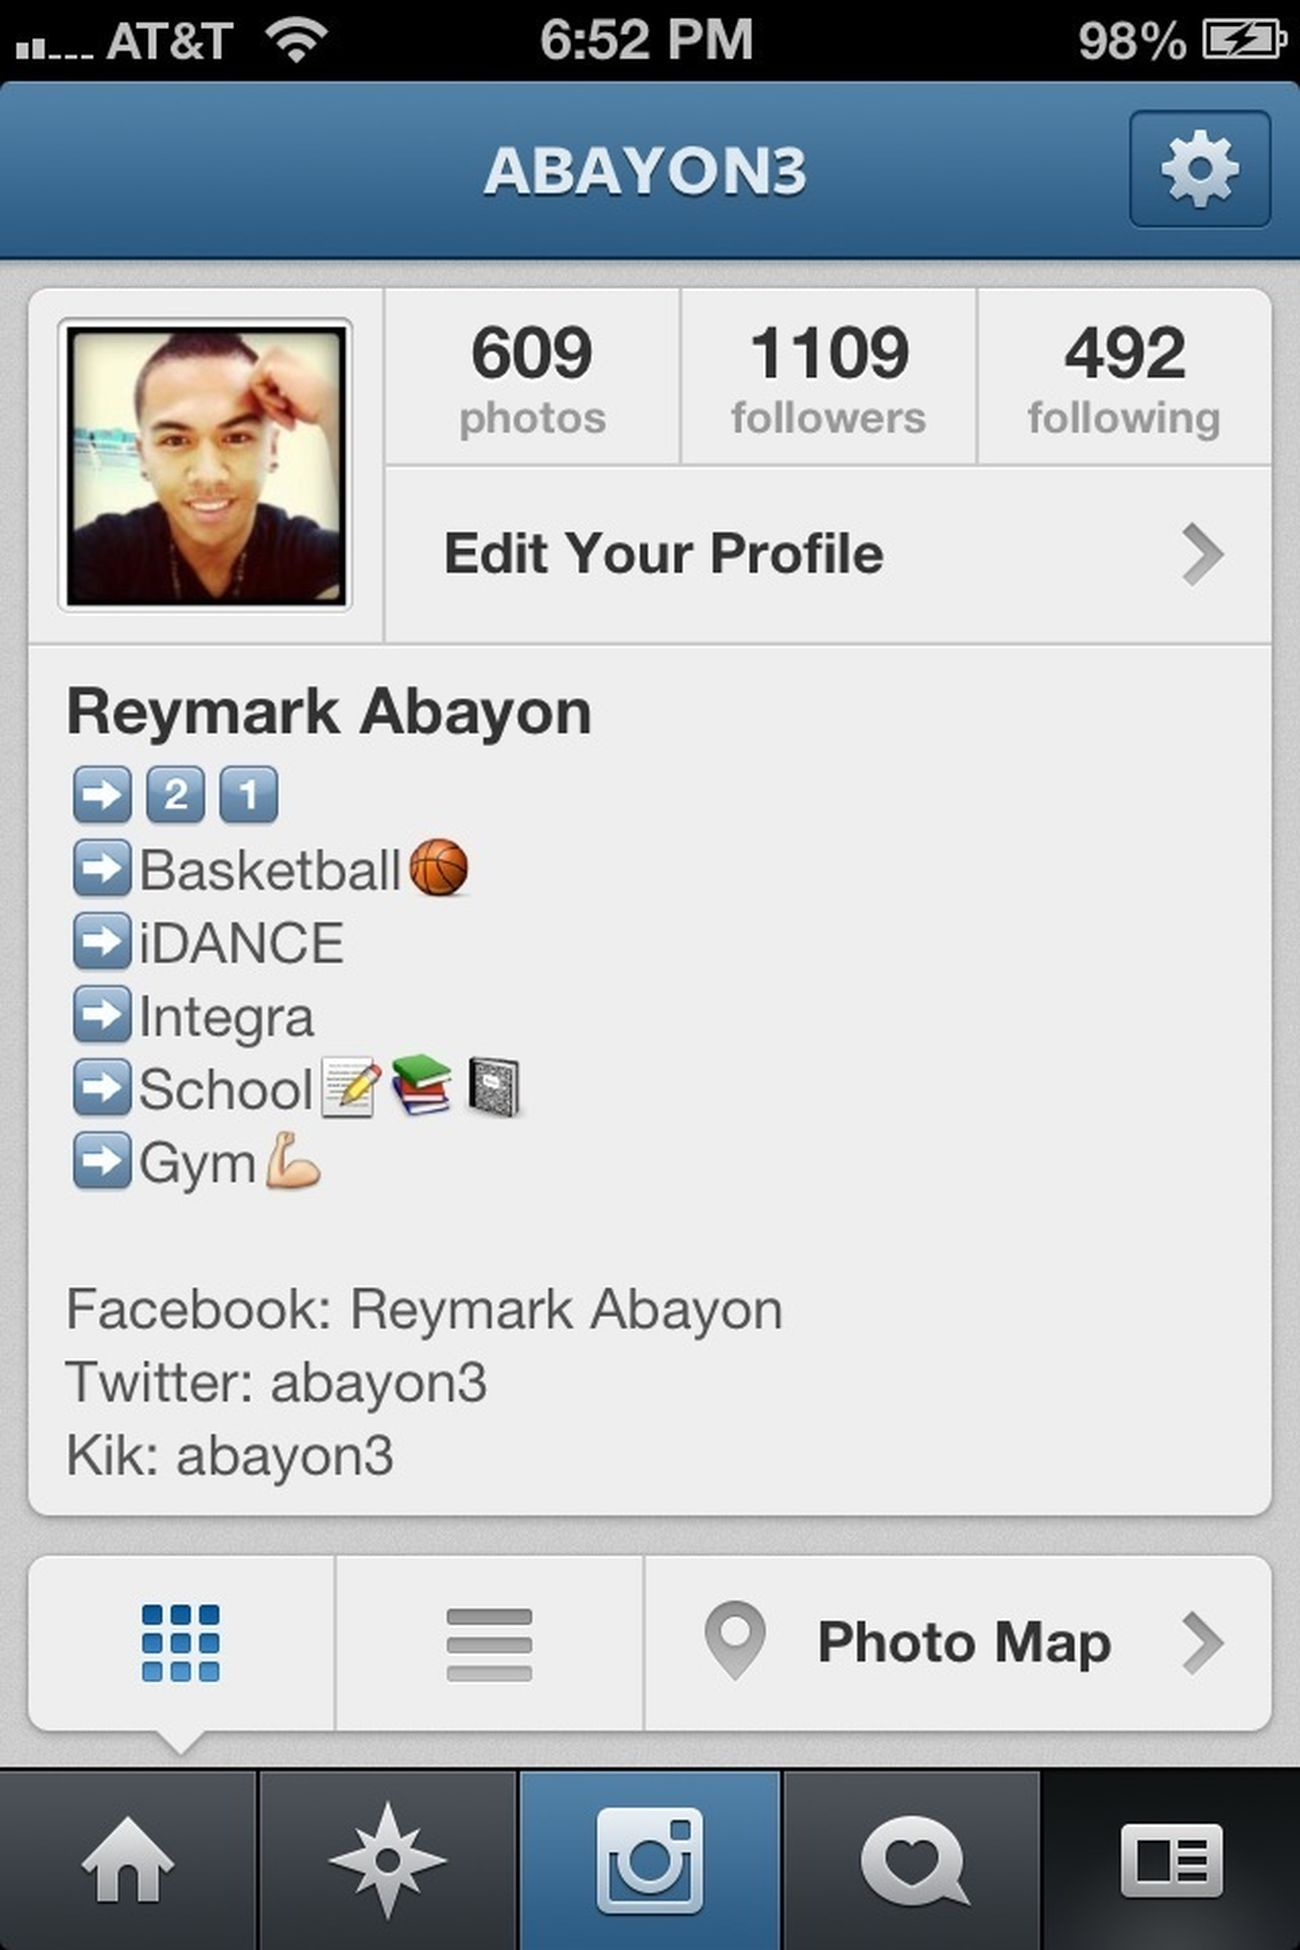 Follow me on Instagram!! @abayon3